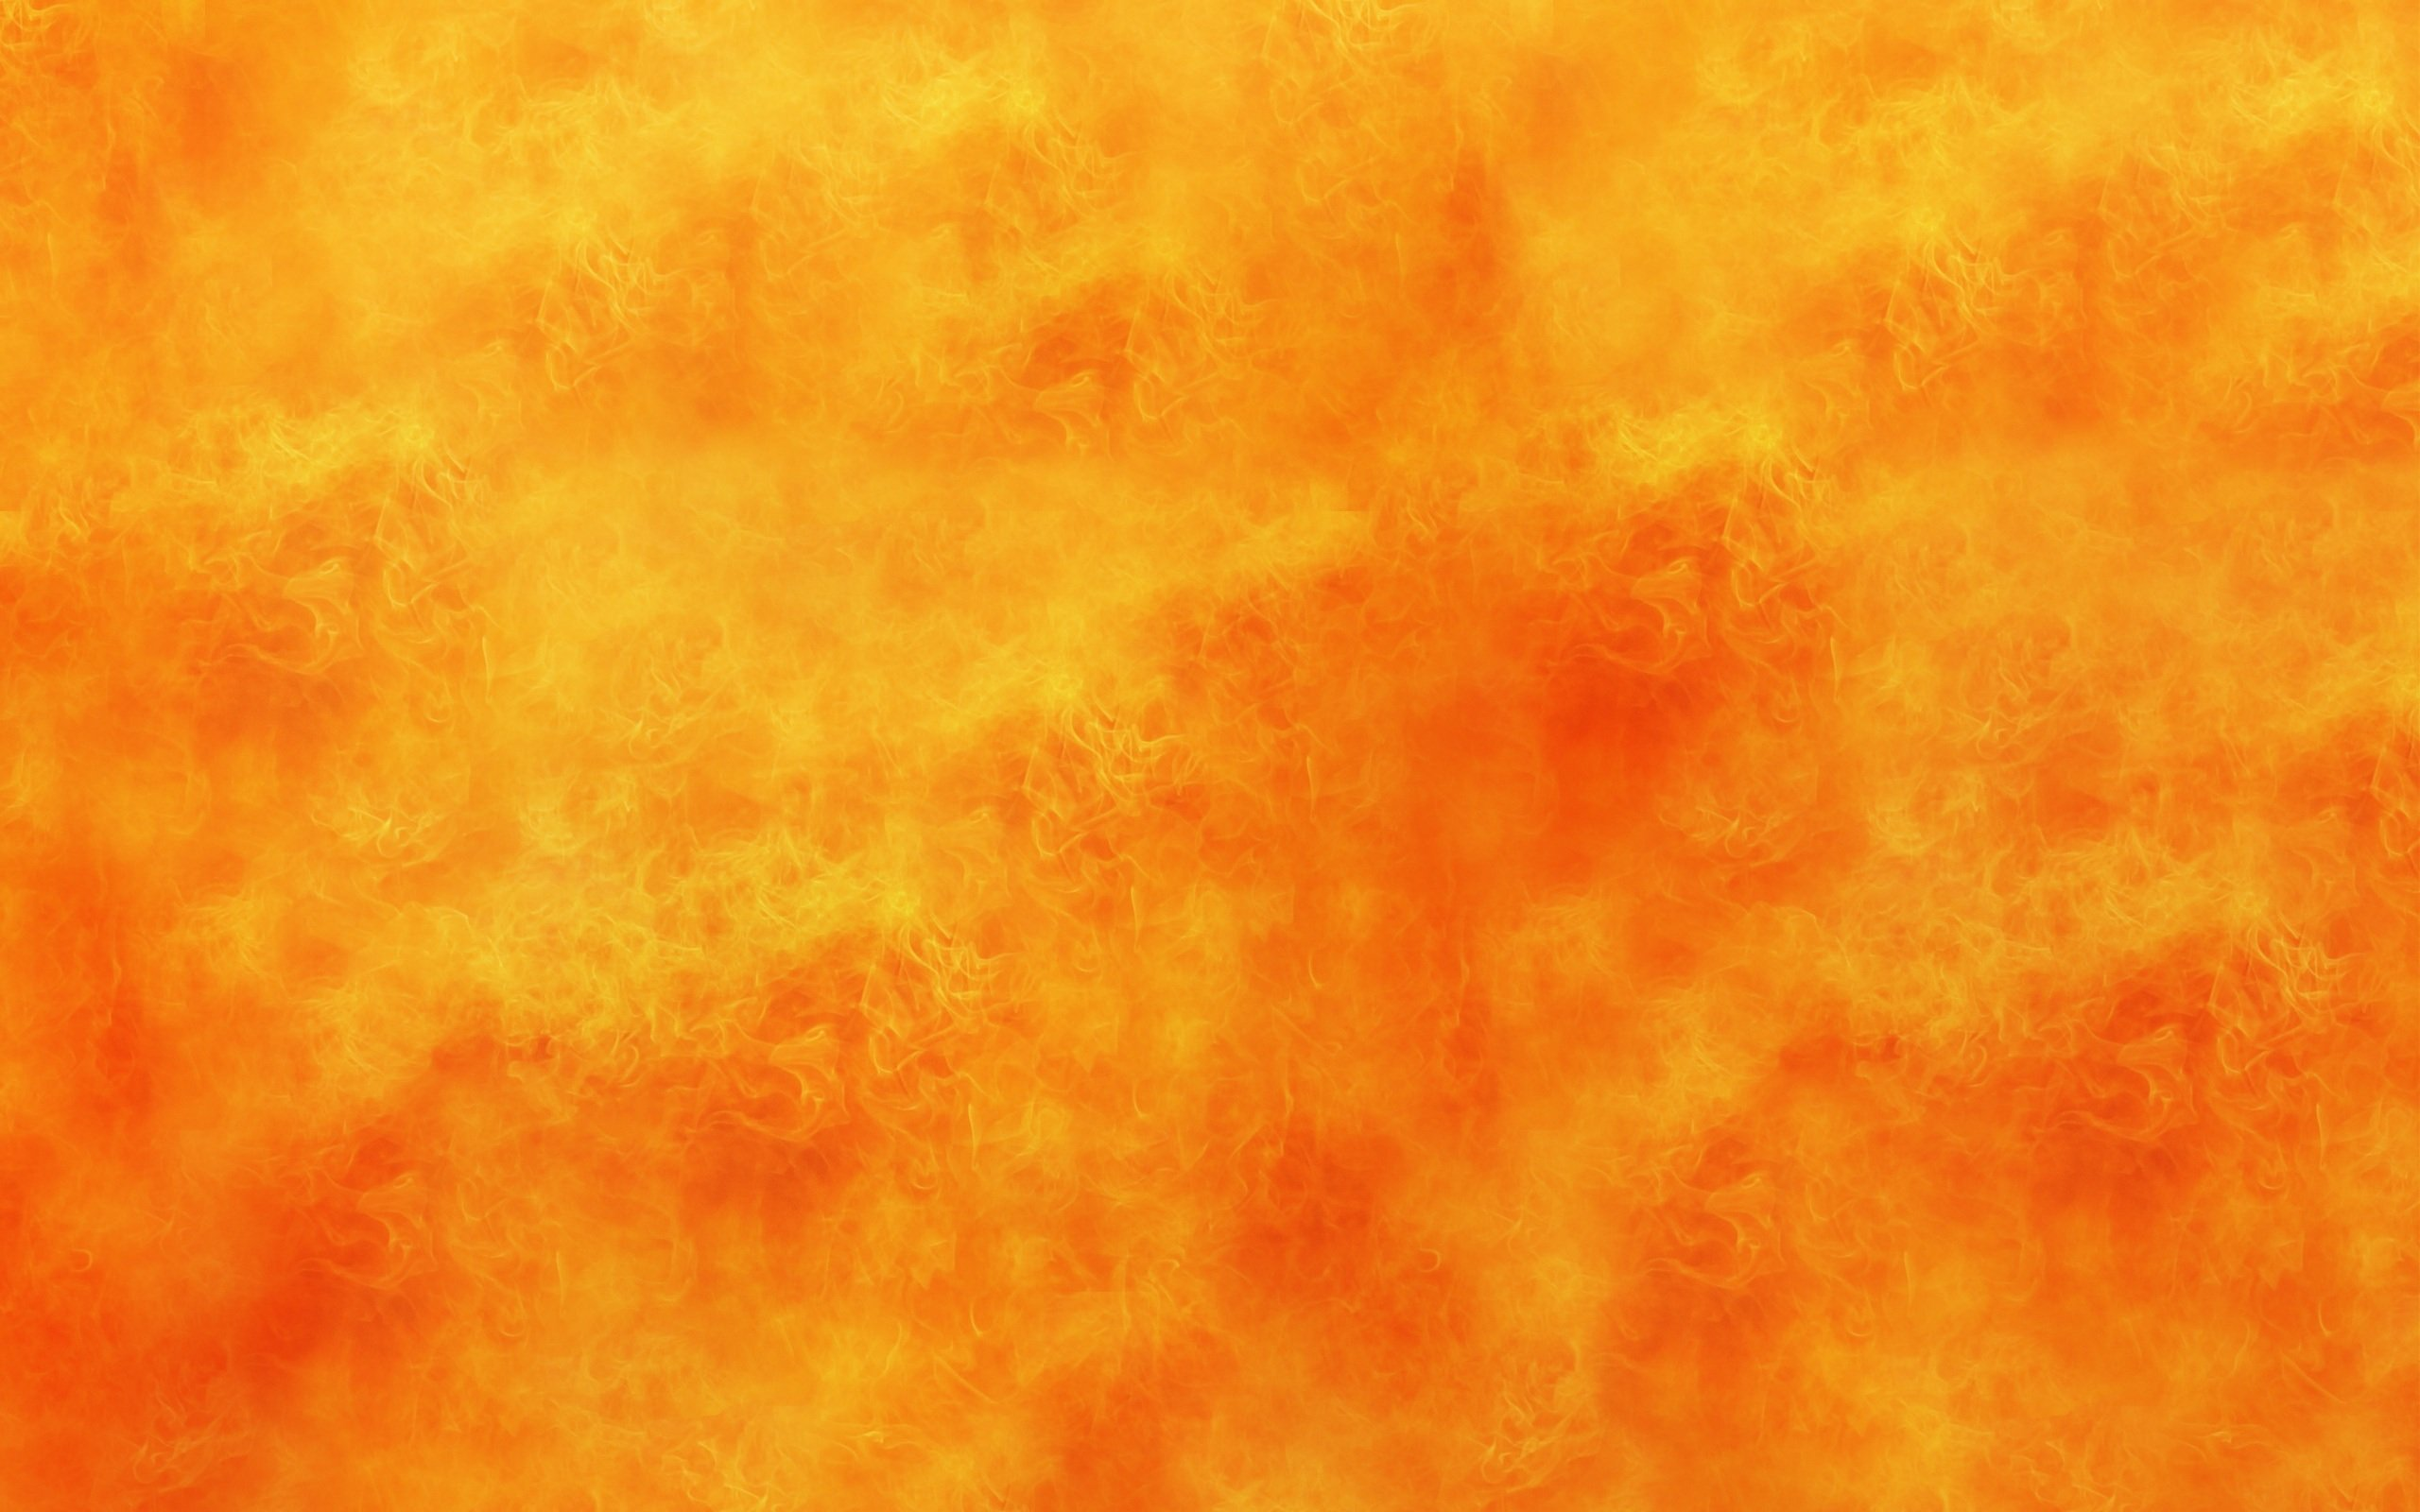 Desktop hd orange camo wallpaper Download 3d HD colour design 2560x1600